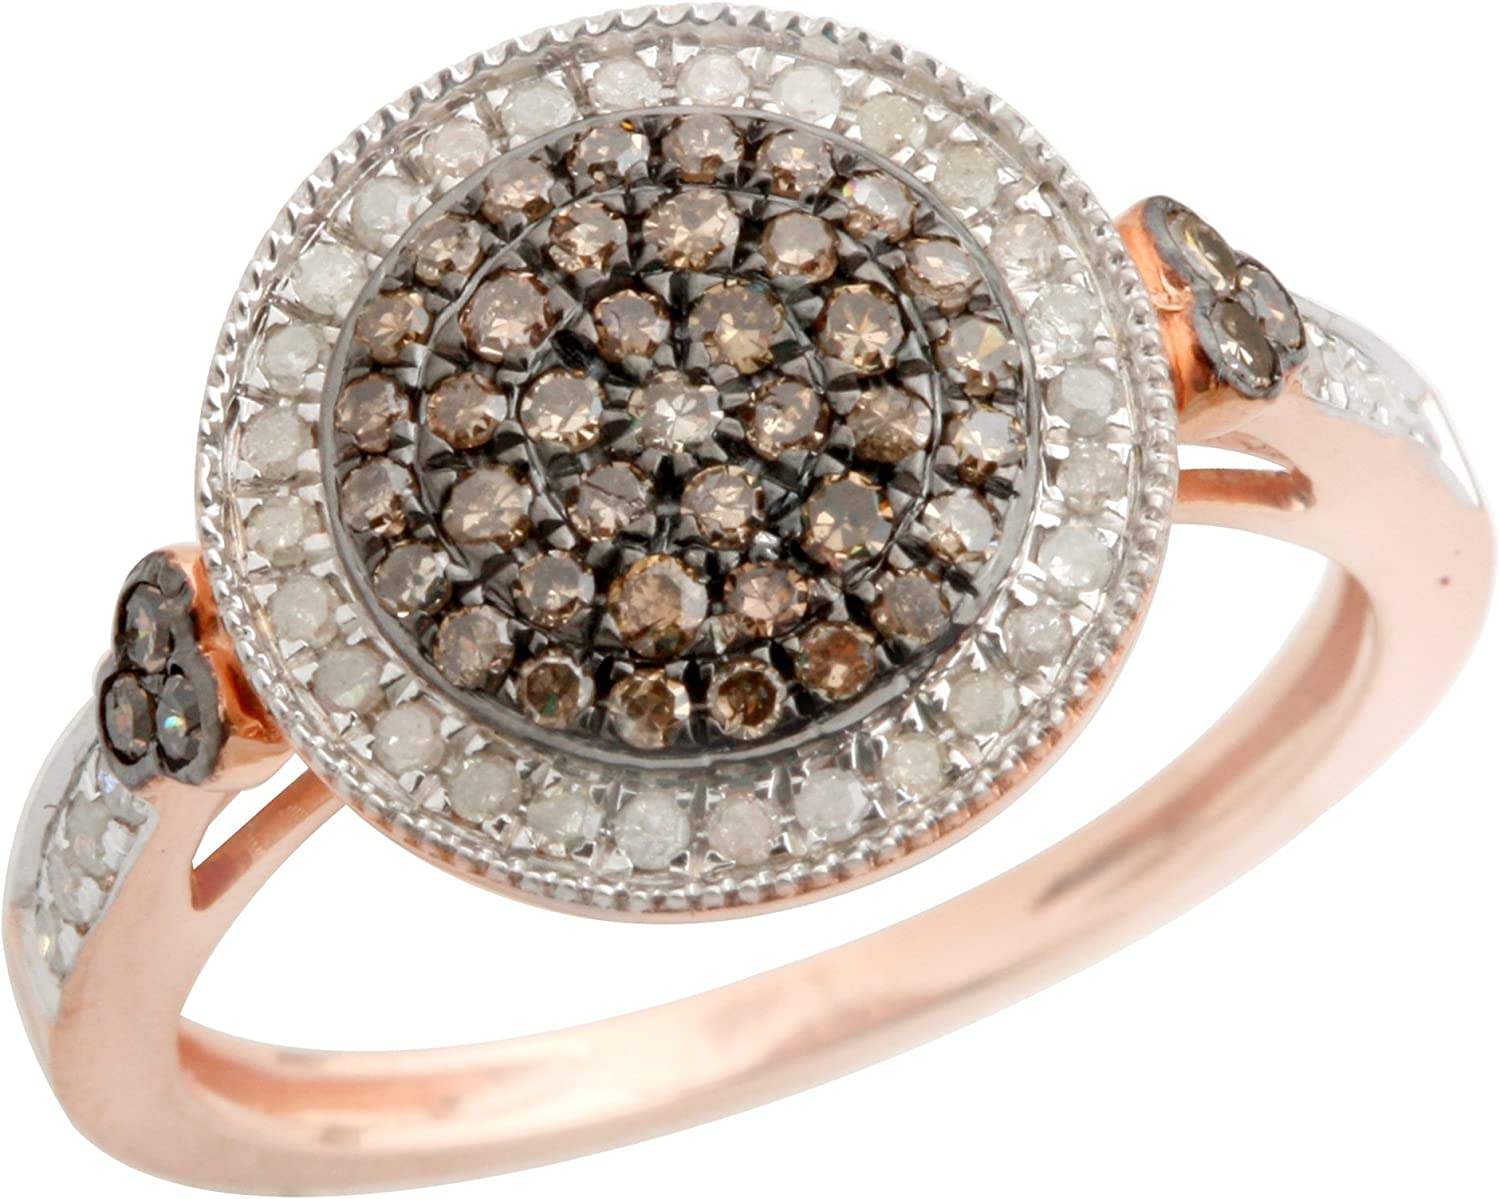 Prism Jewel 0.49 Carat Natural Round Brown Diamond With Diamond Cluster Ring